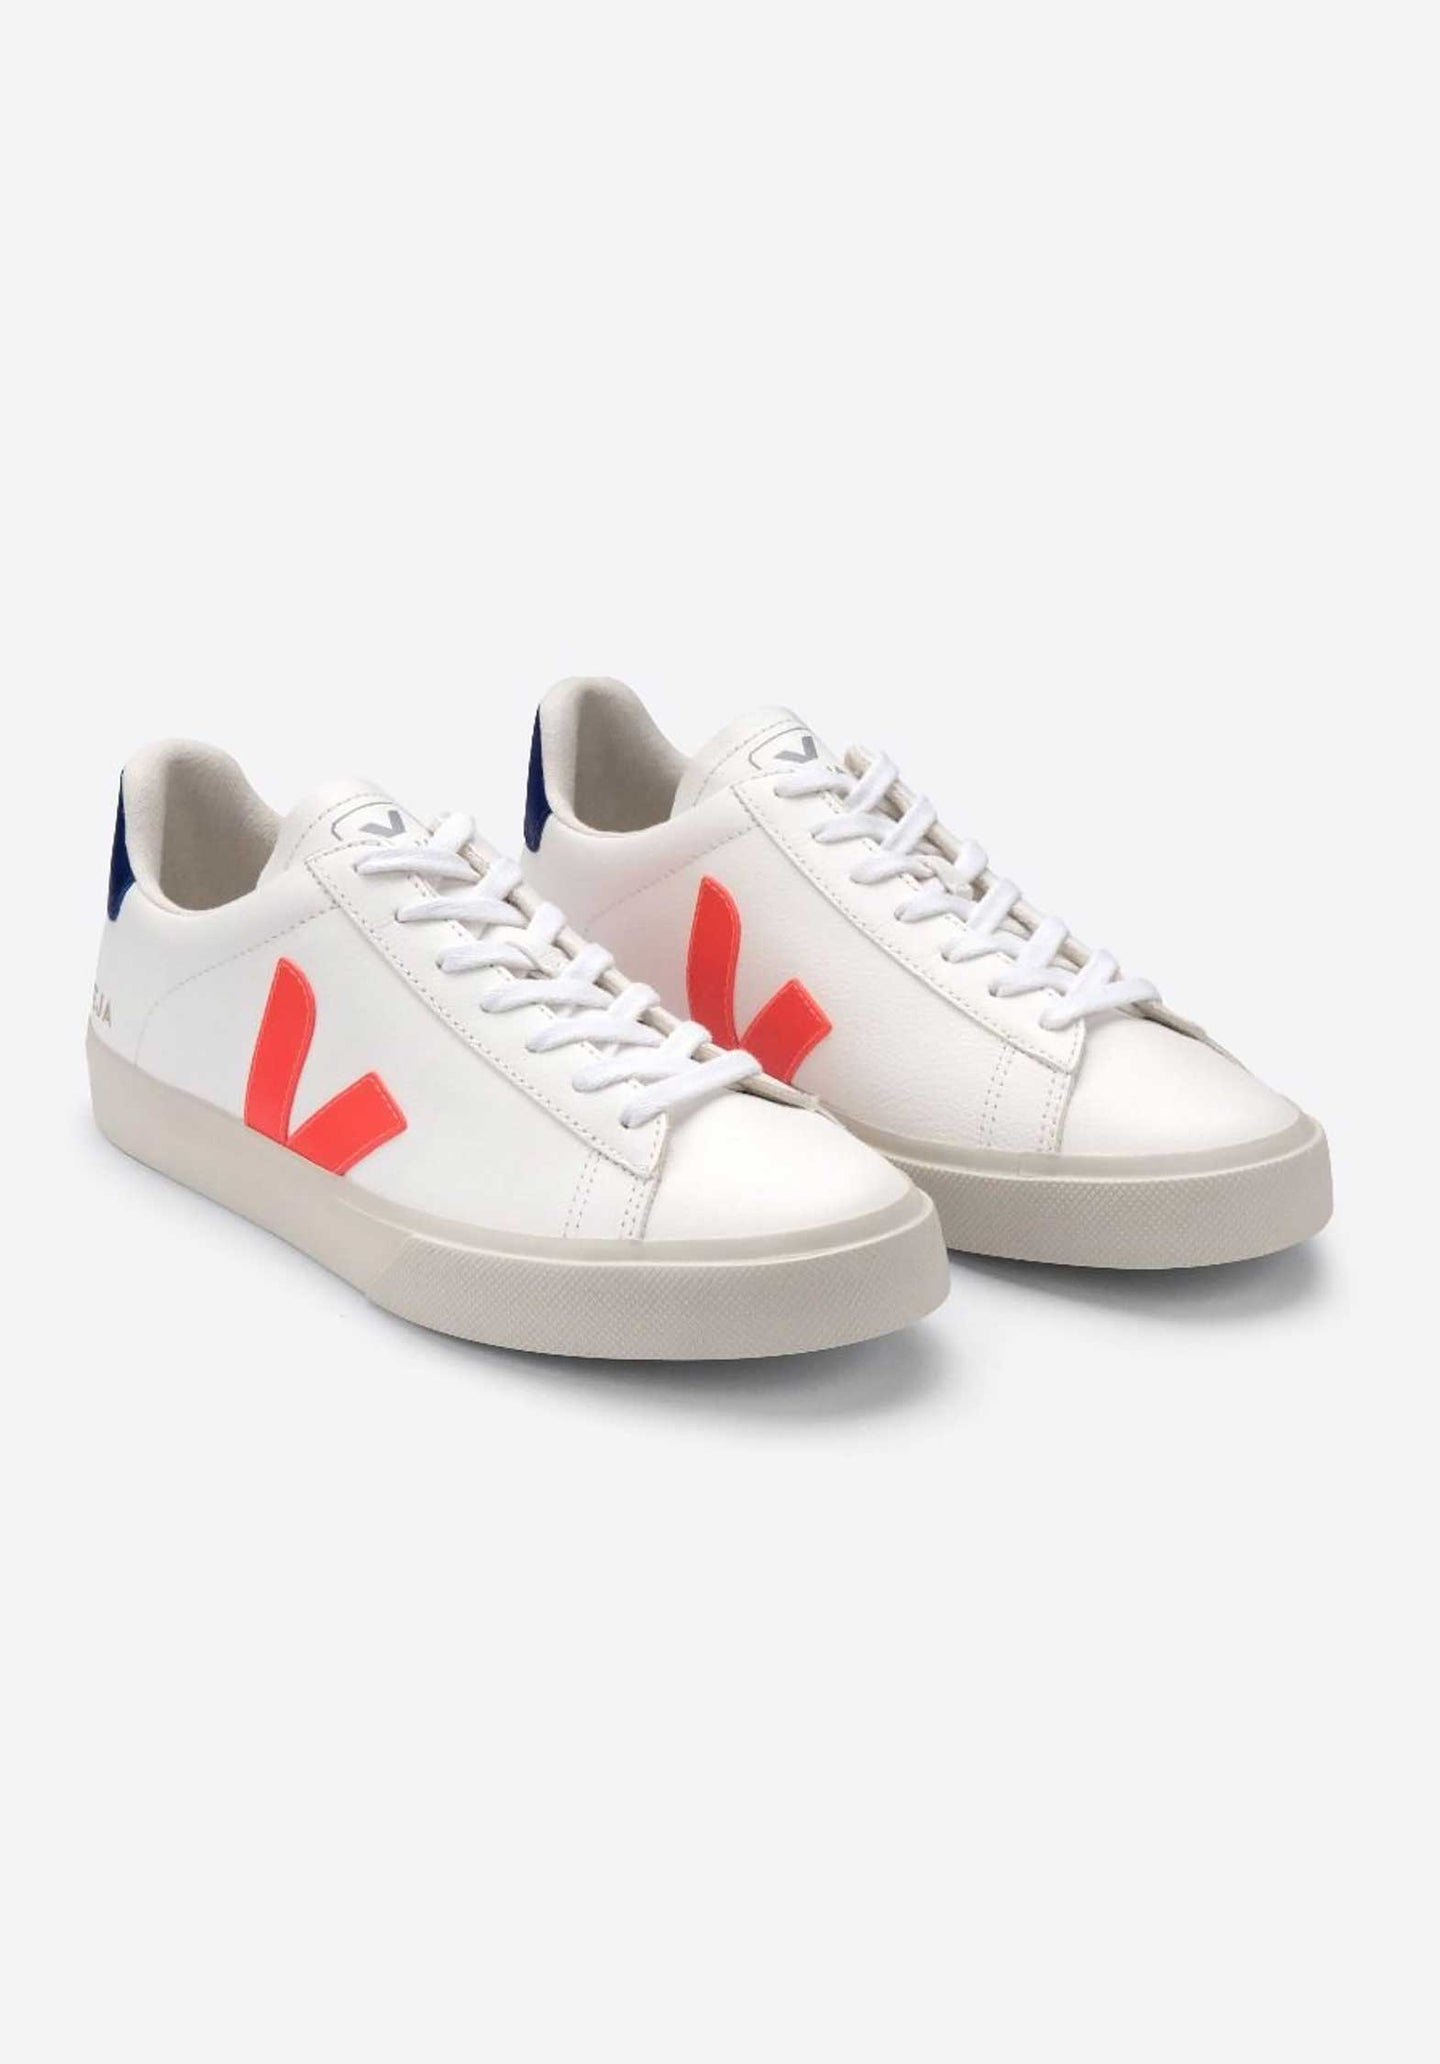 Campo Chromefree Leather Lace Up Sneakers White Orange White-Orange-Fluo-Co